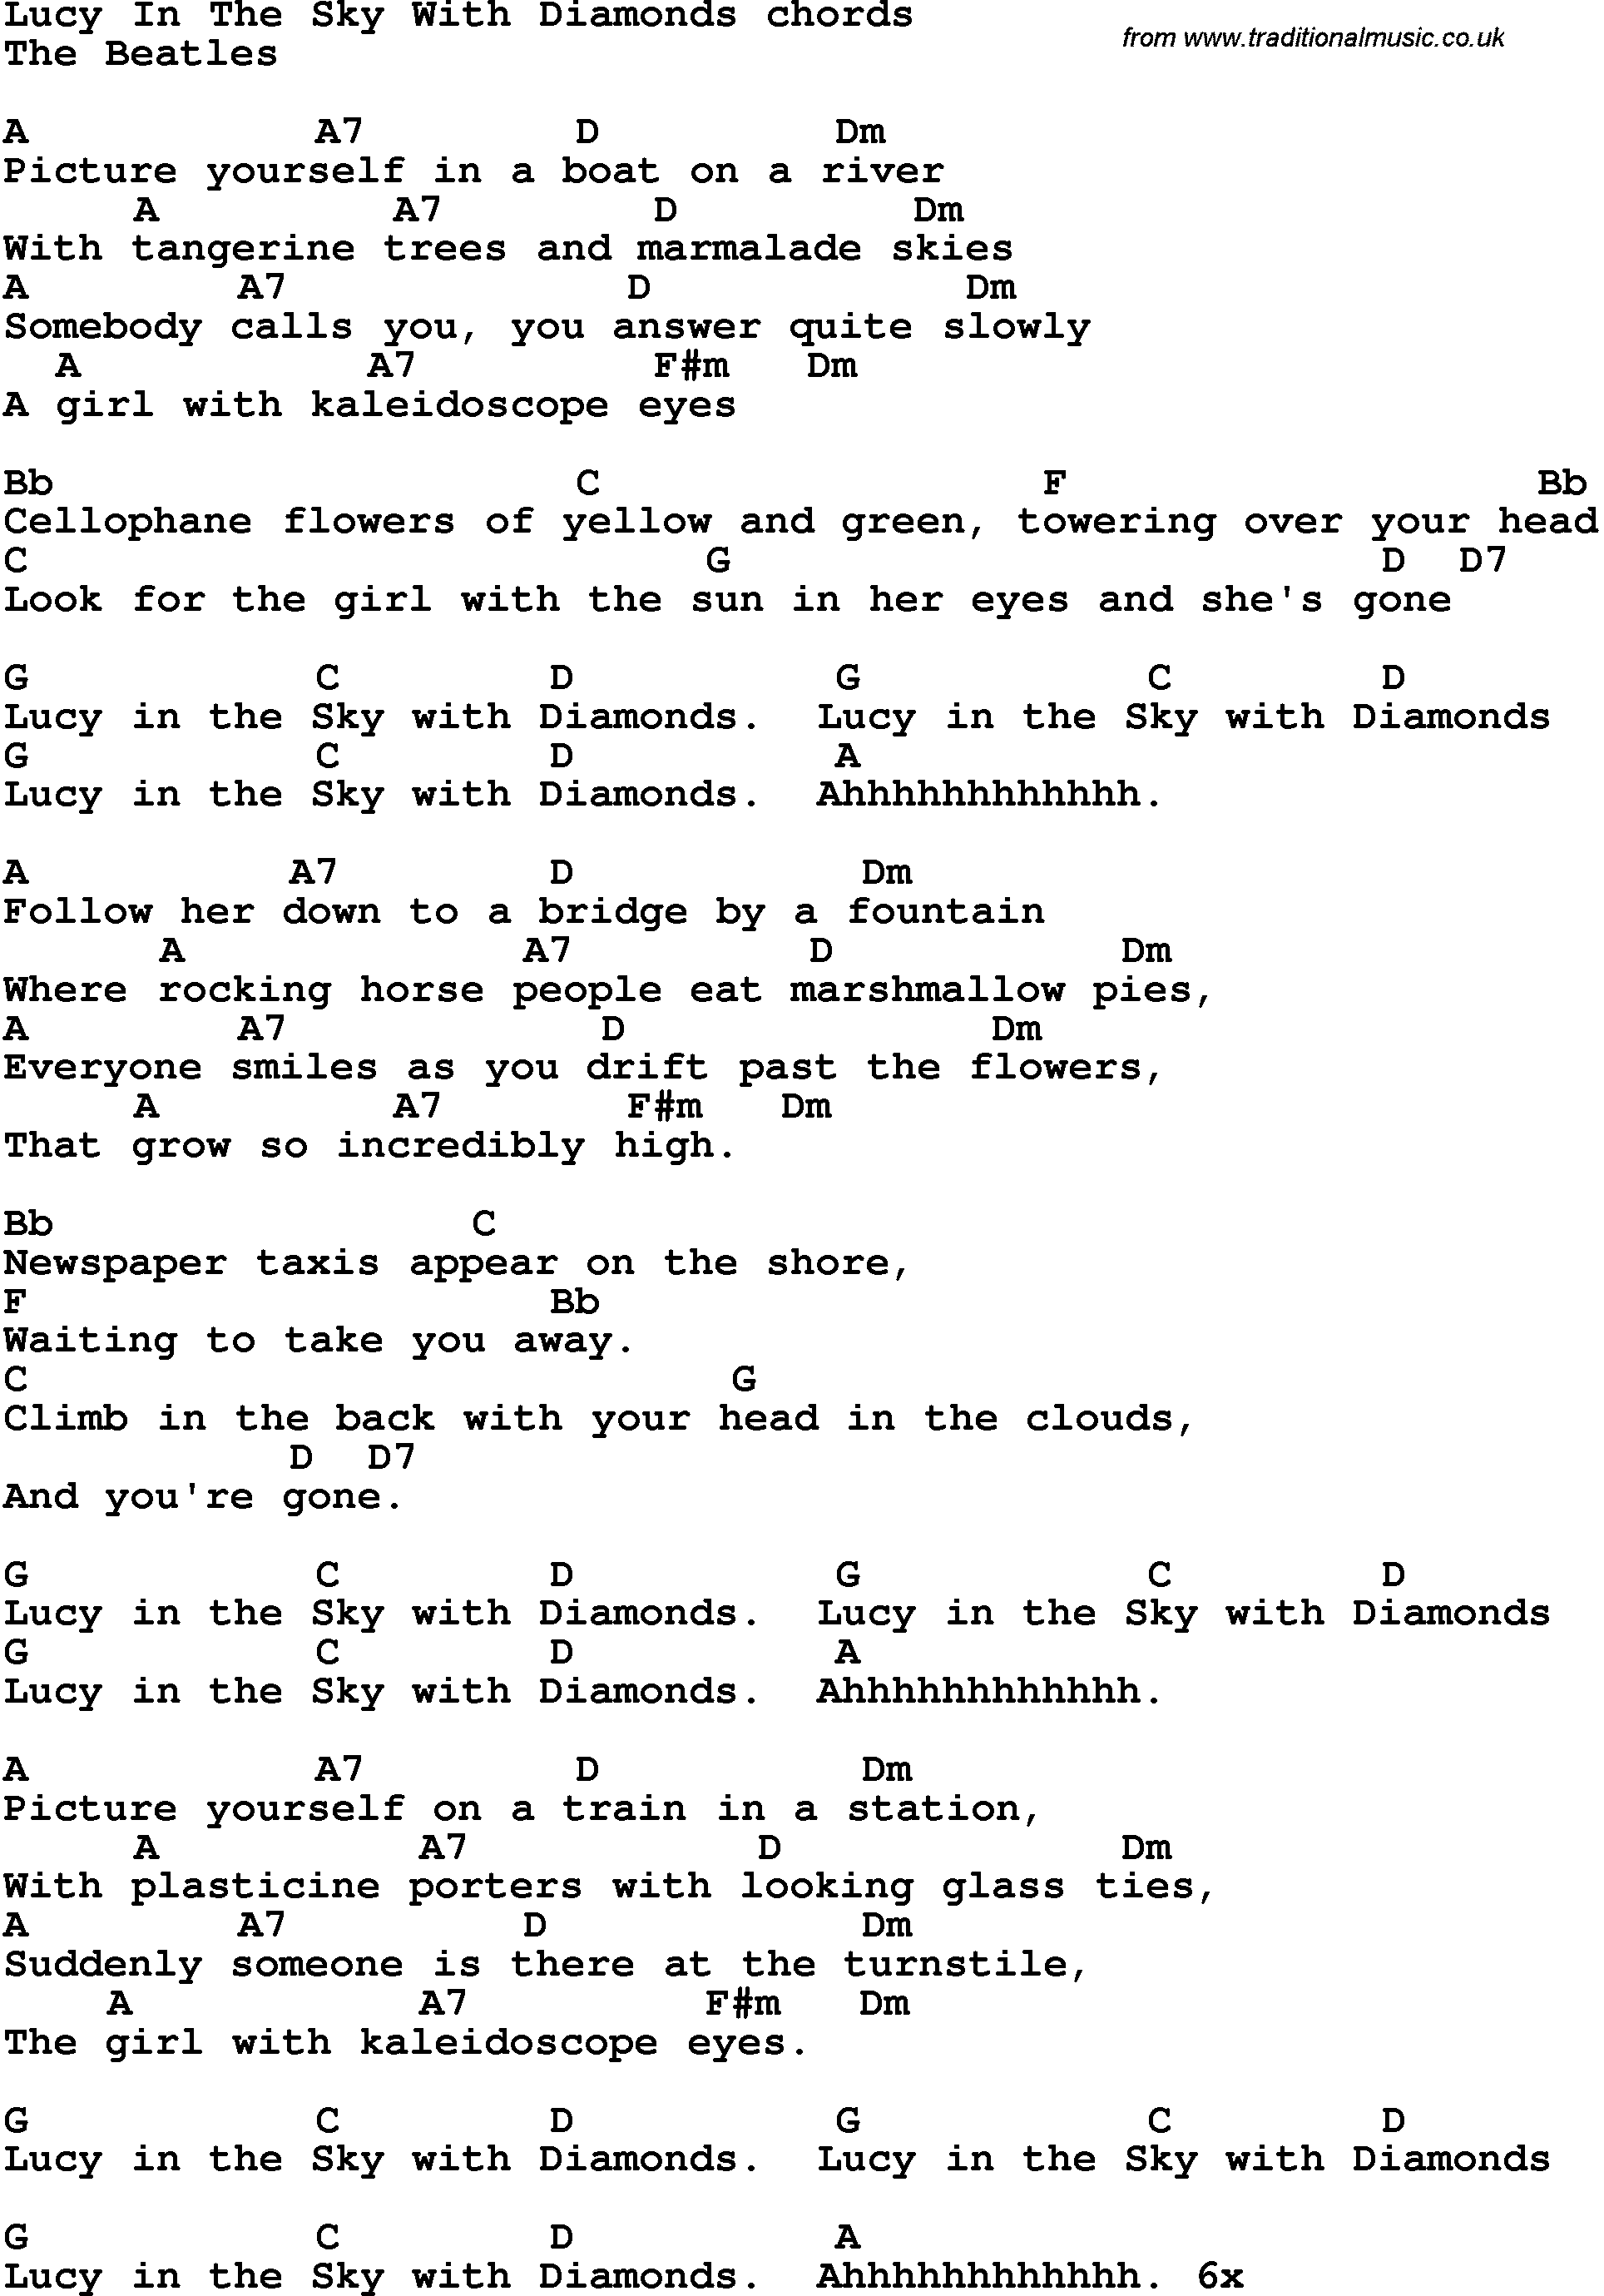 Lucy Guitar Chords Song Lyrics With Guitar Chords